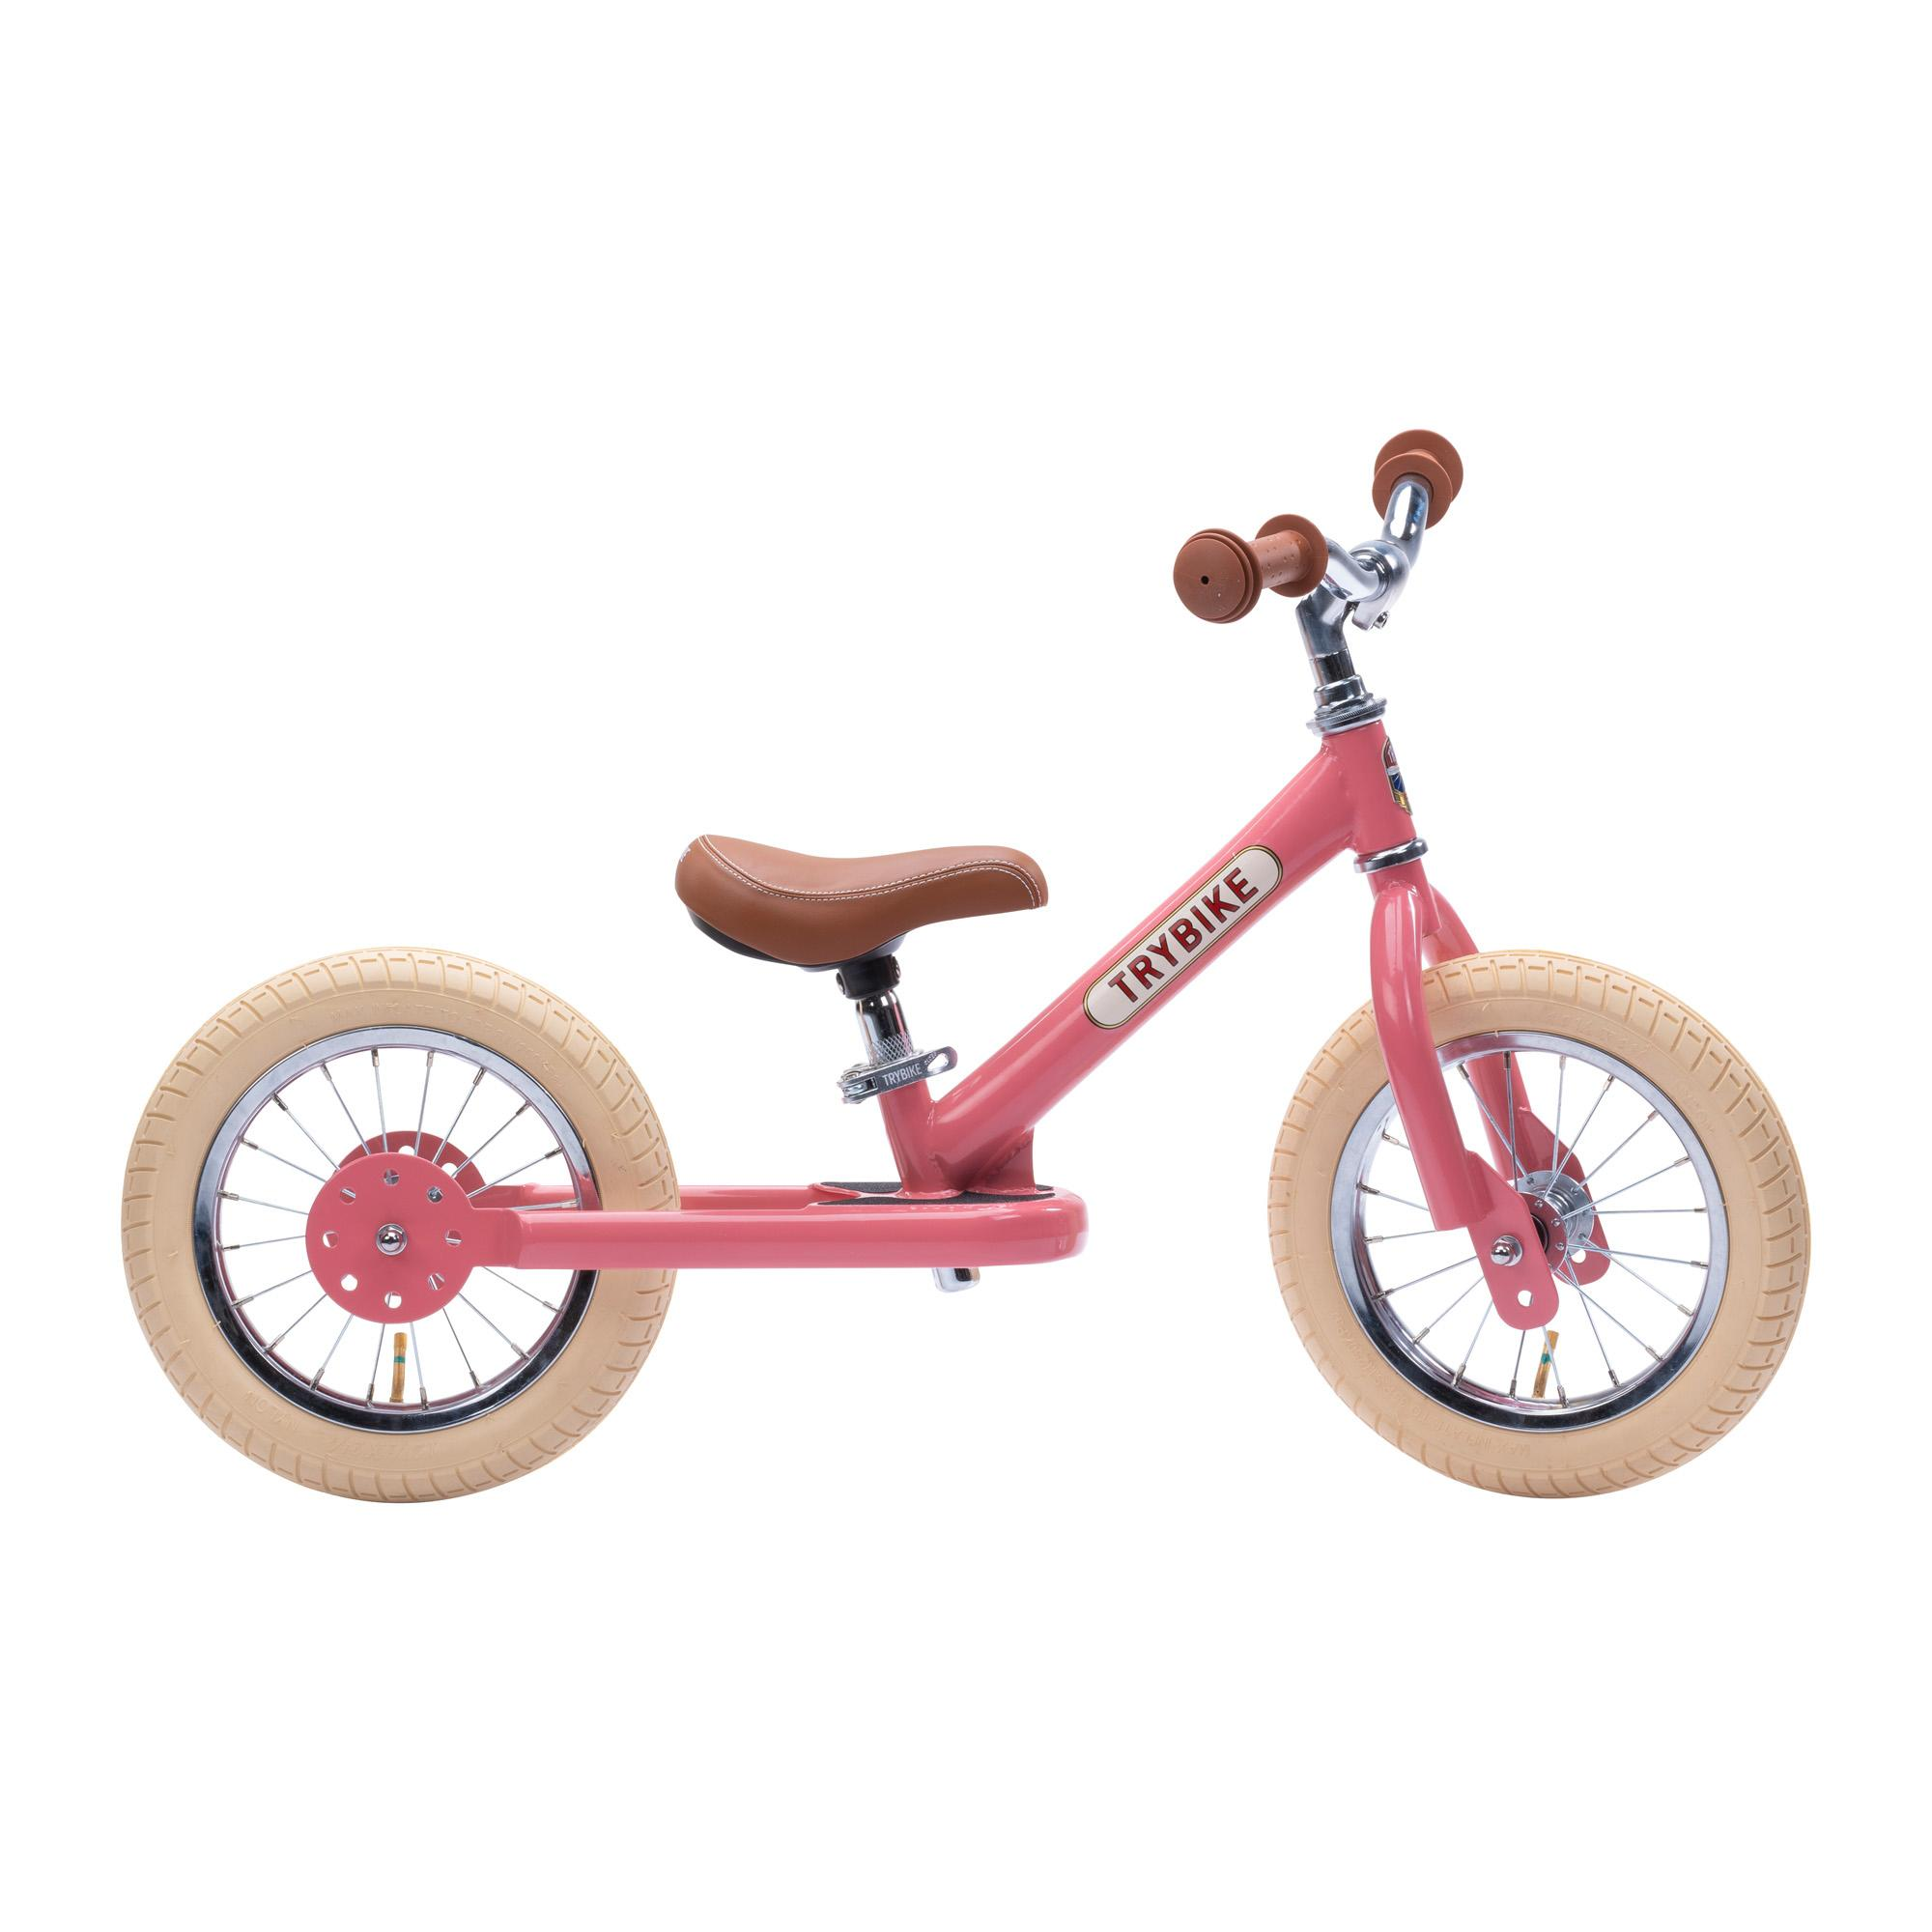 Side view of pink Trybike on white background.